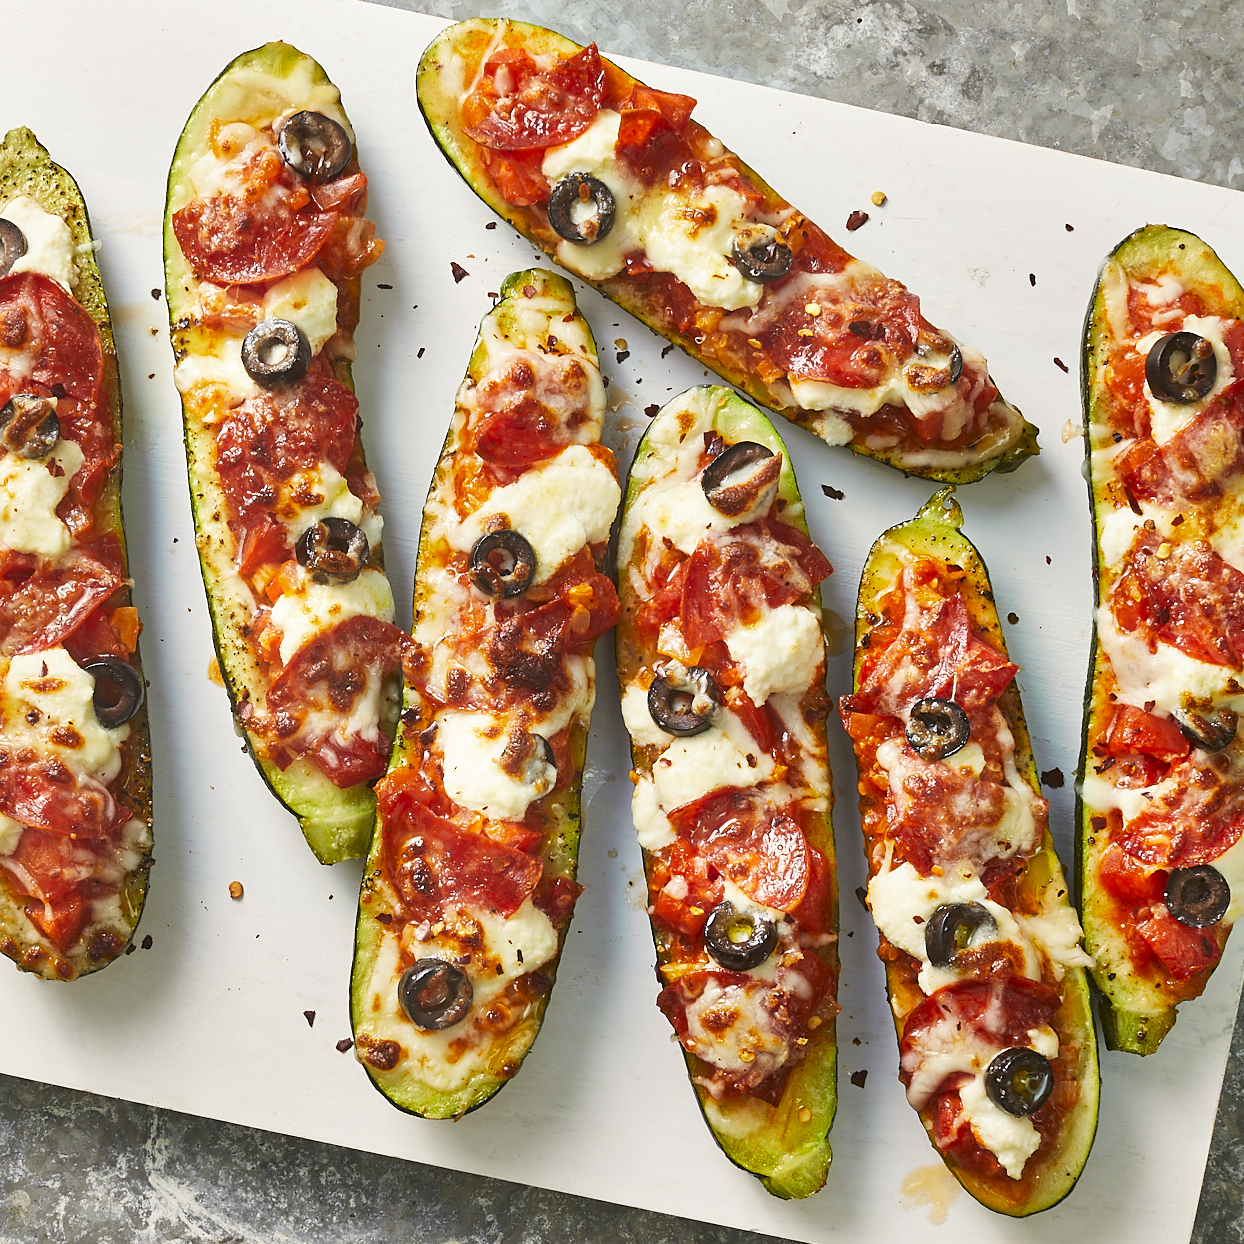 Turkey pepperoni, olives and diced tomato fill these stuffed zucchini boats. Ricotta and melted mozzarella cheese make this a fun twist on pizza without all the carbs. Source: EatingWell.com, May 2020